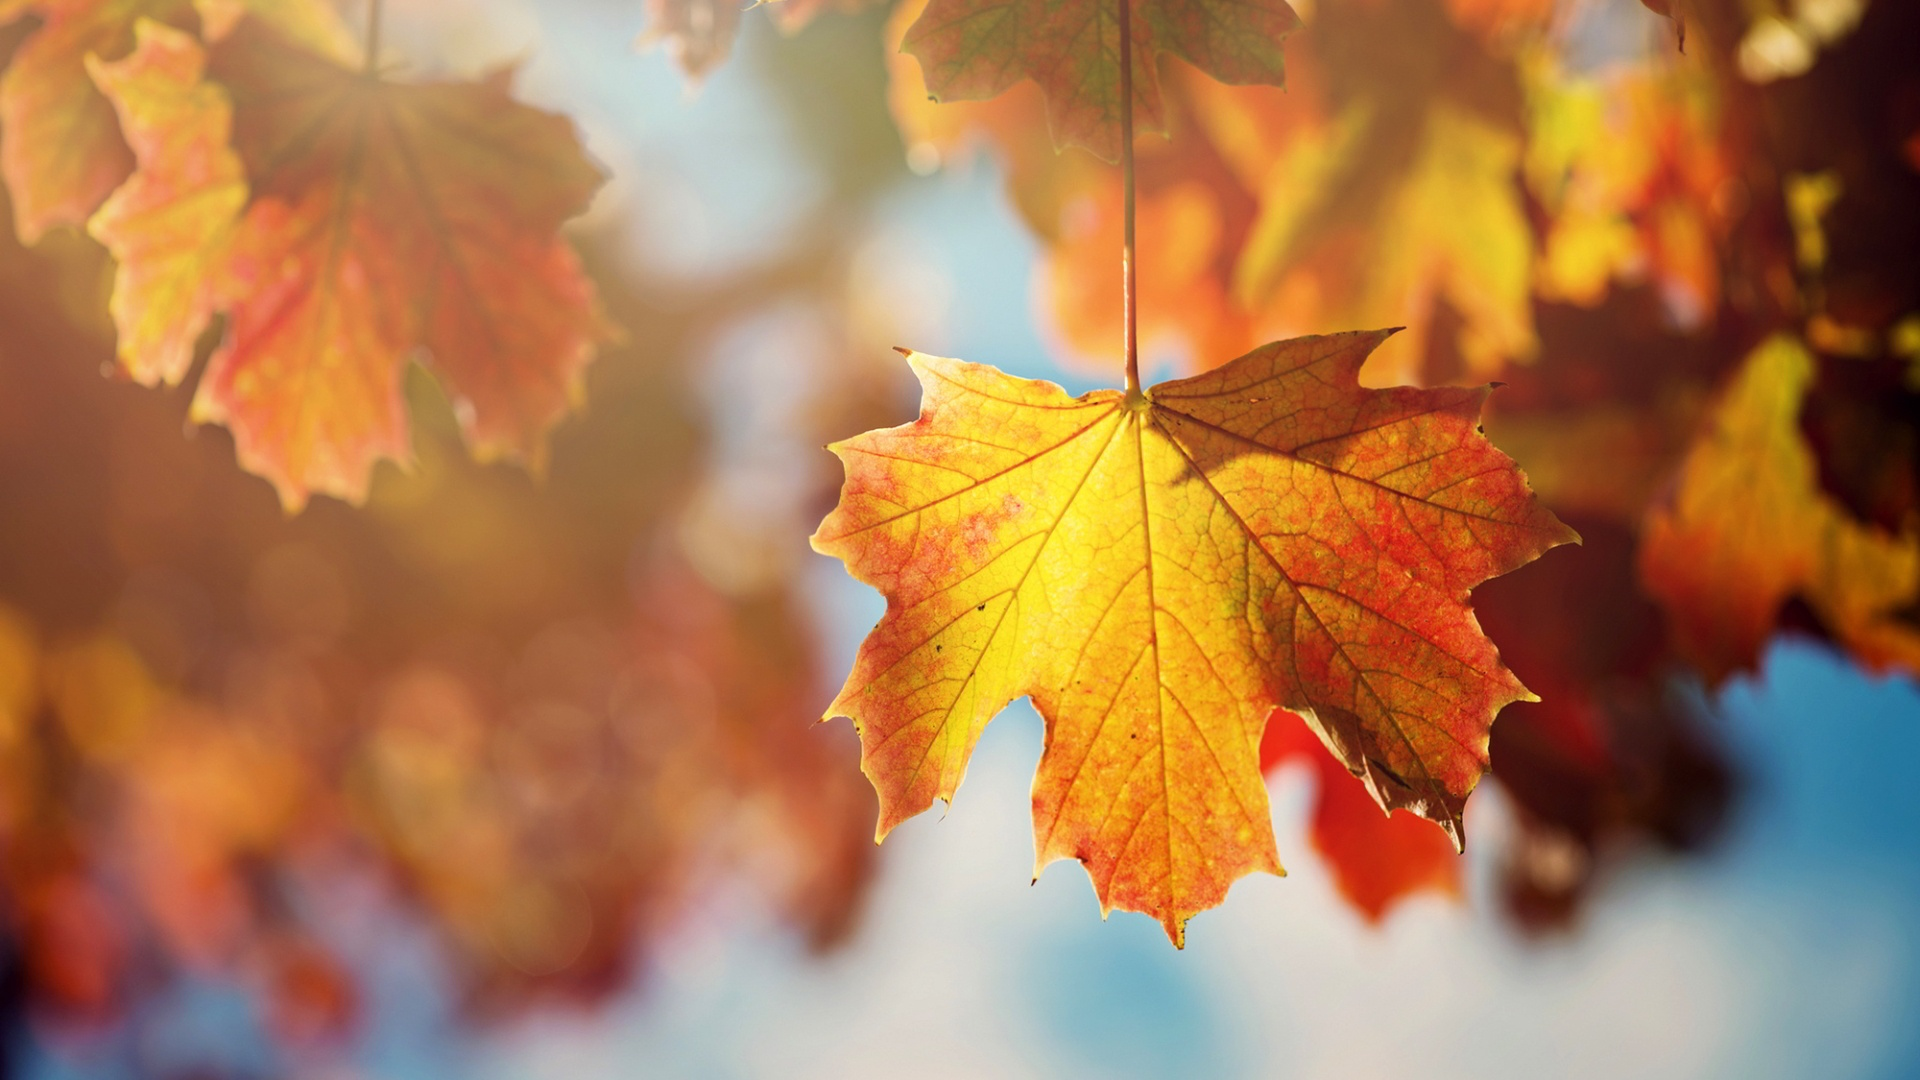 Fall Leaves Falling Wallpaper Maple Leaves Wallpapers Wallpaper High Definition High